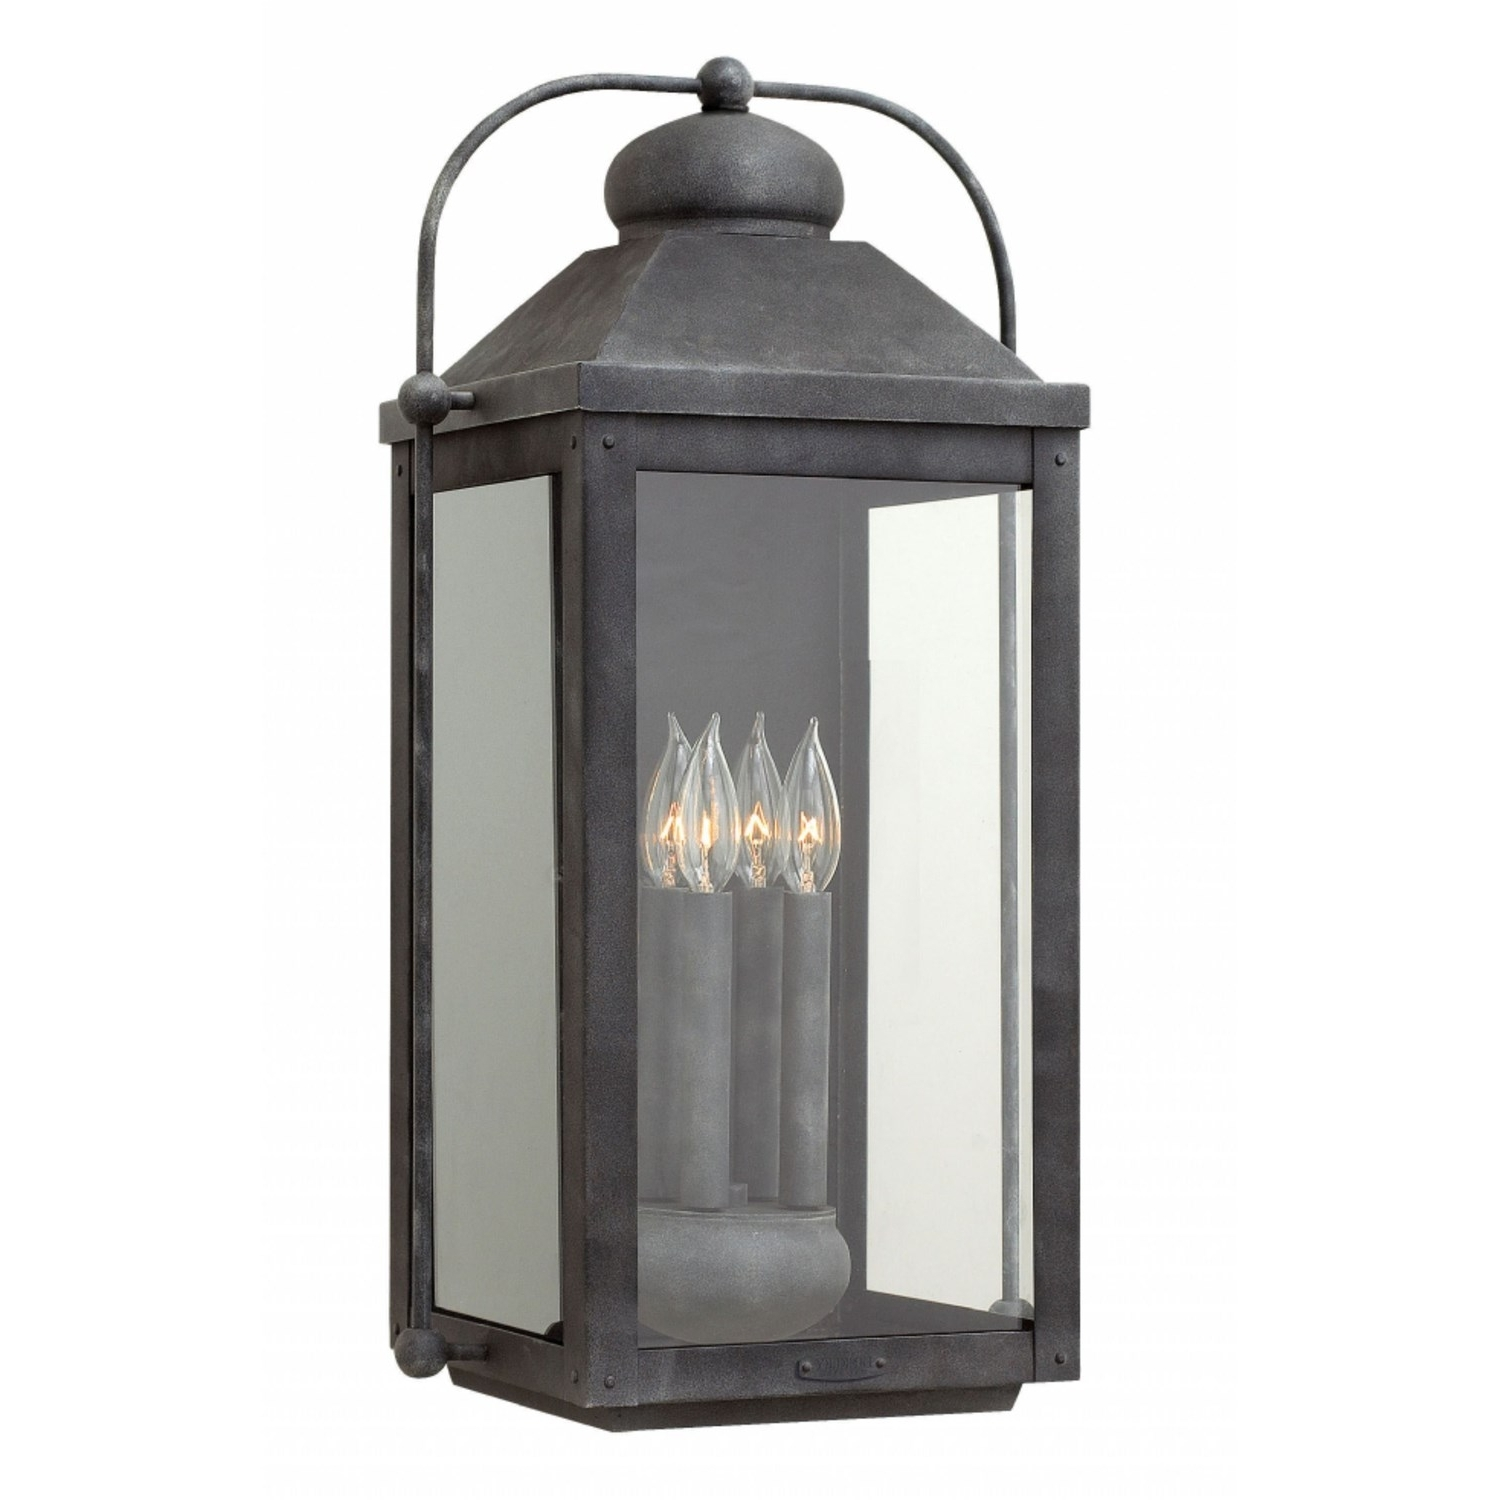 Famous Extra Large Outdoor Wall Lighting Intended For Hinkley 1858Dz Anchorage 4 Light Outdoor Extra Large Wall Mount In (View 13 of 20)